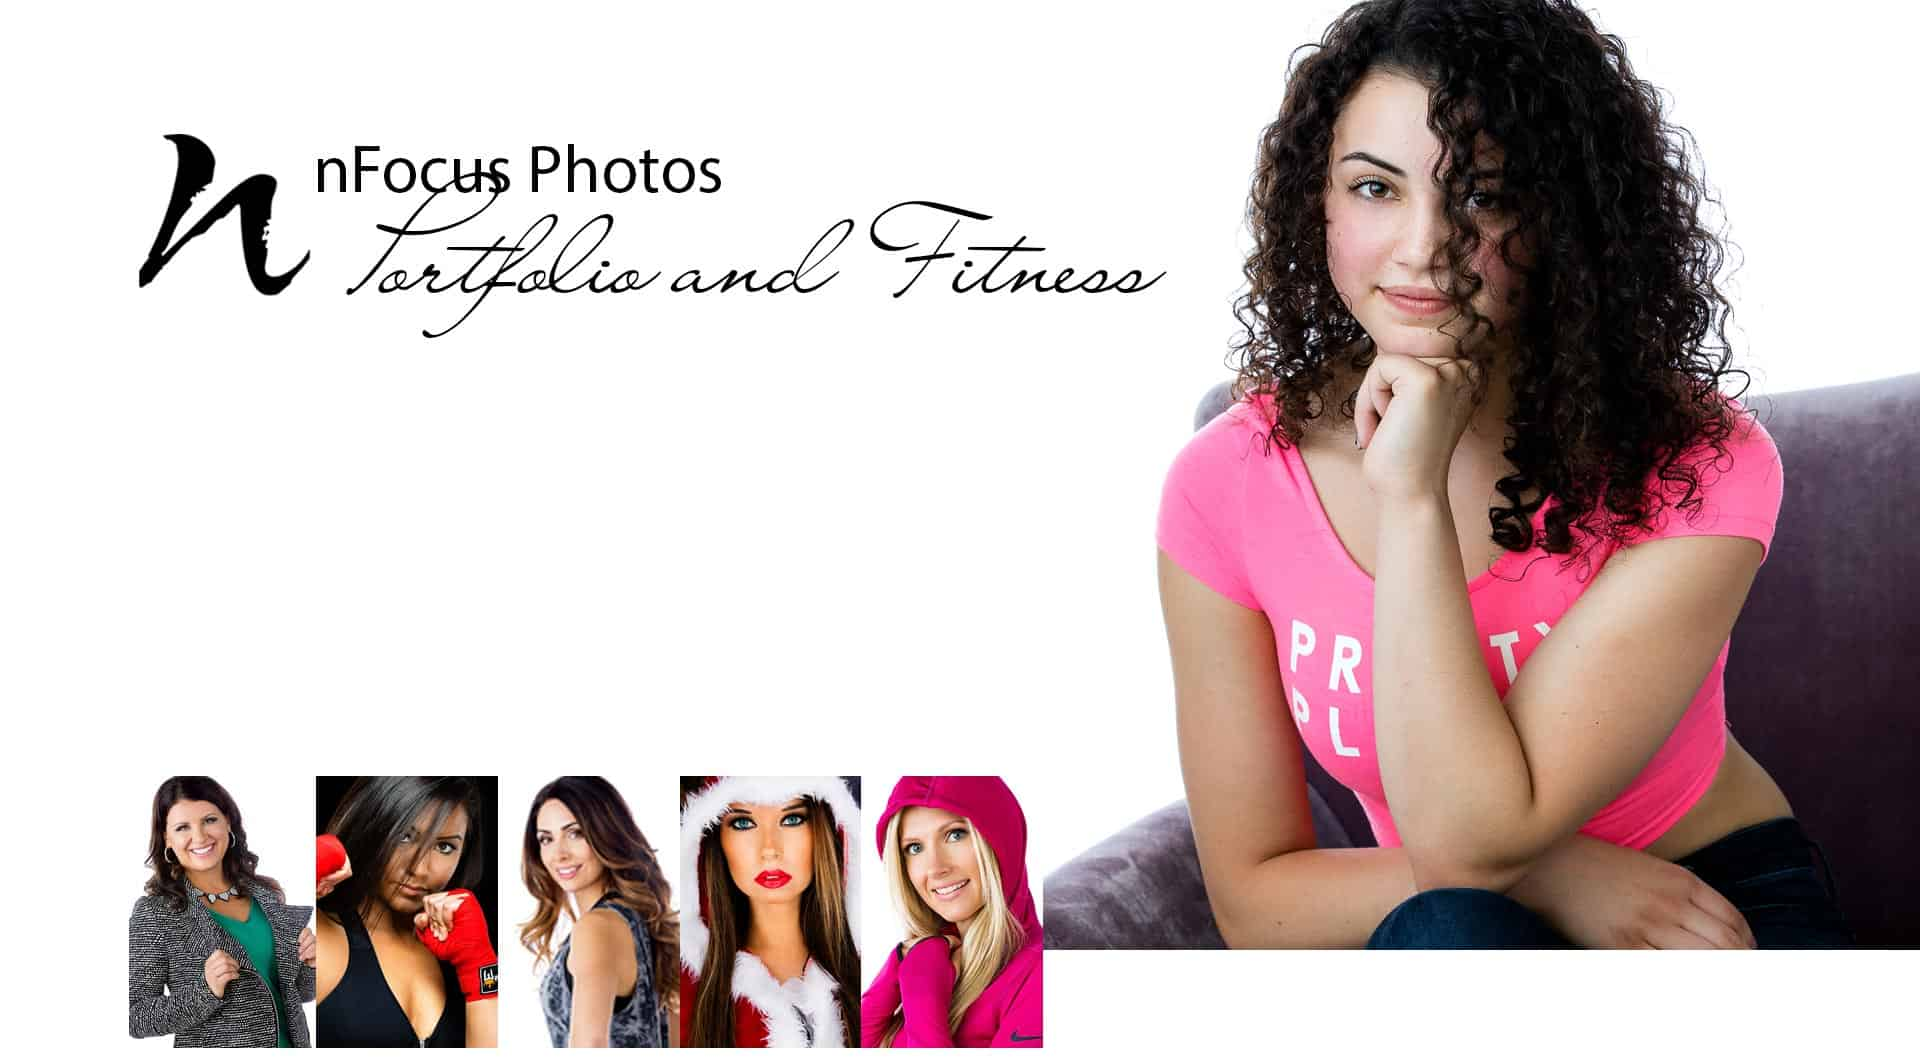 Crystal Lake Fitness Portfolio Modeling Photographer